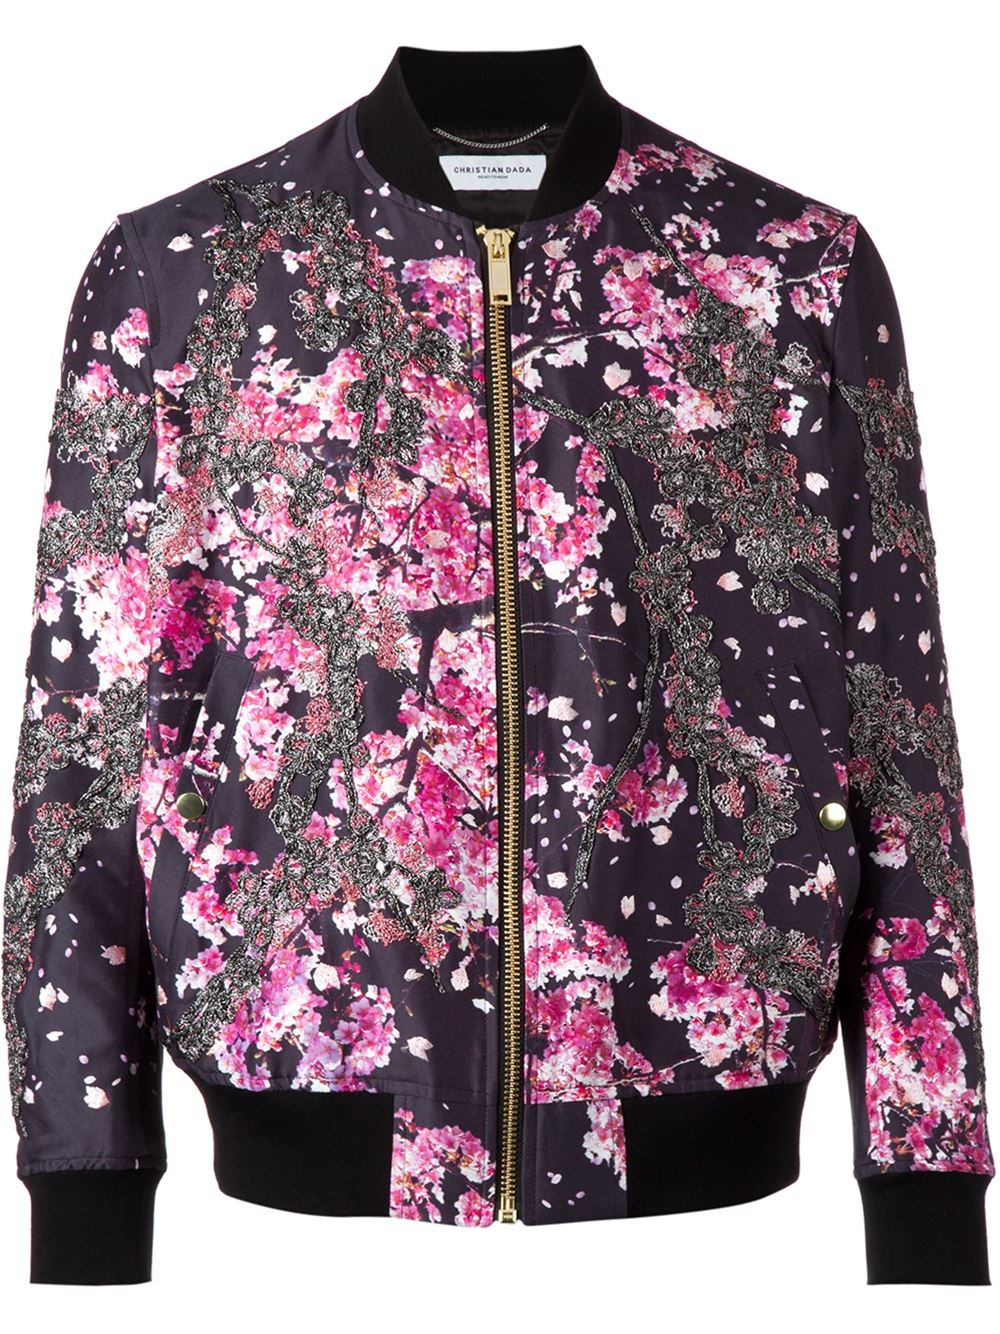 Christian dada floral print embroidered bomber jacket in